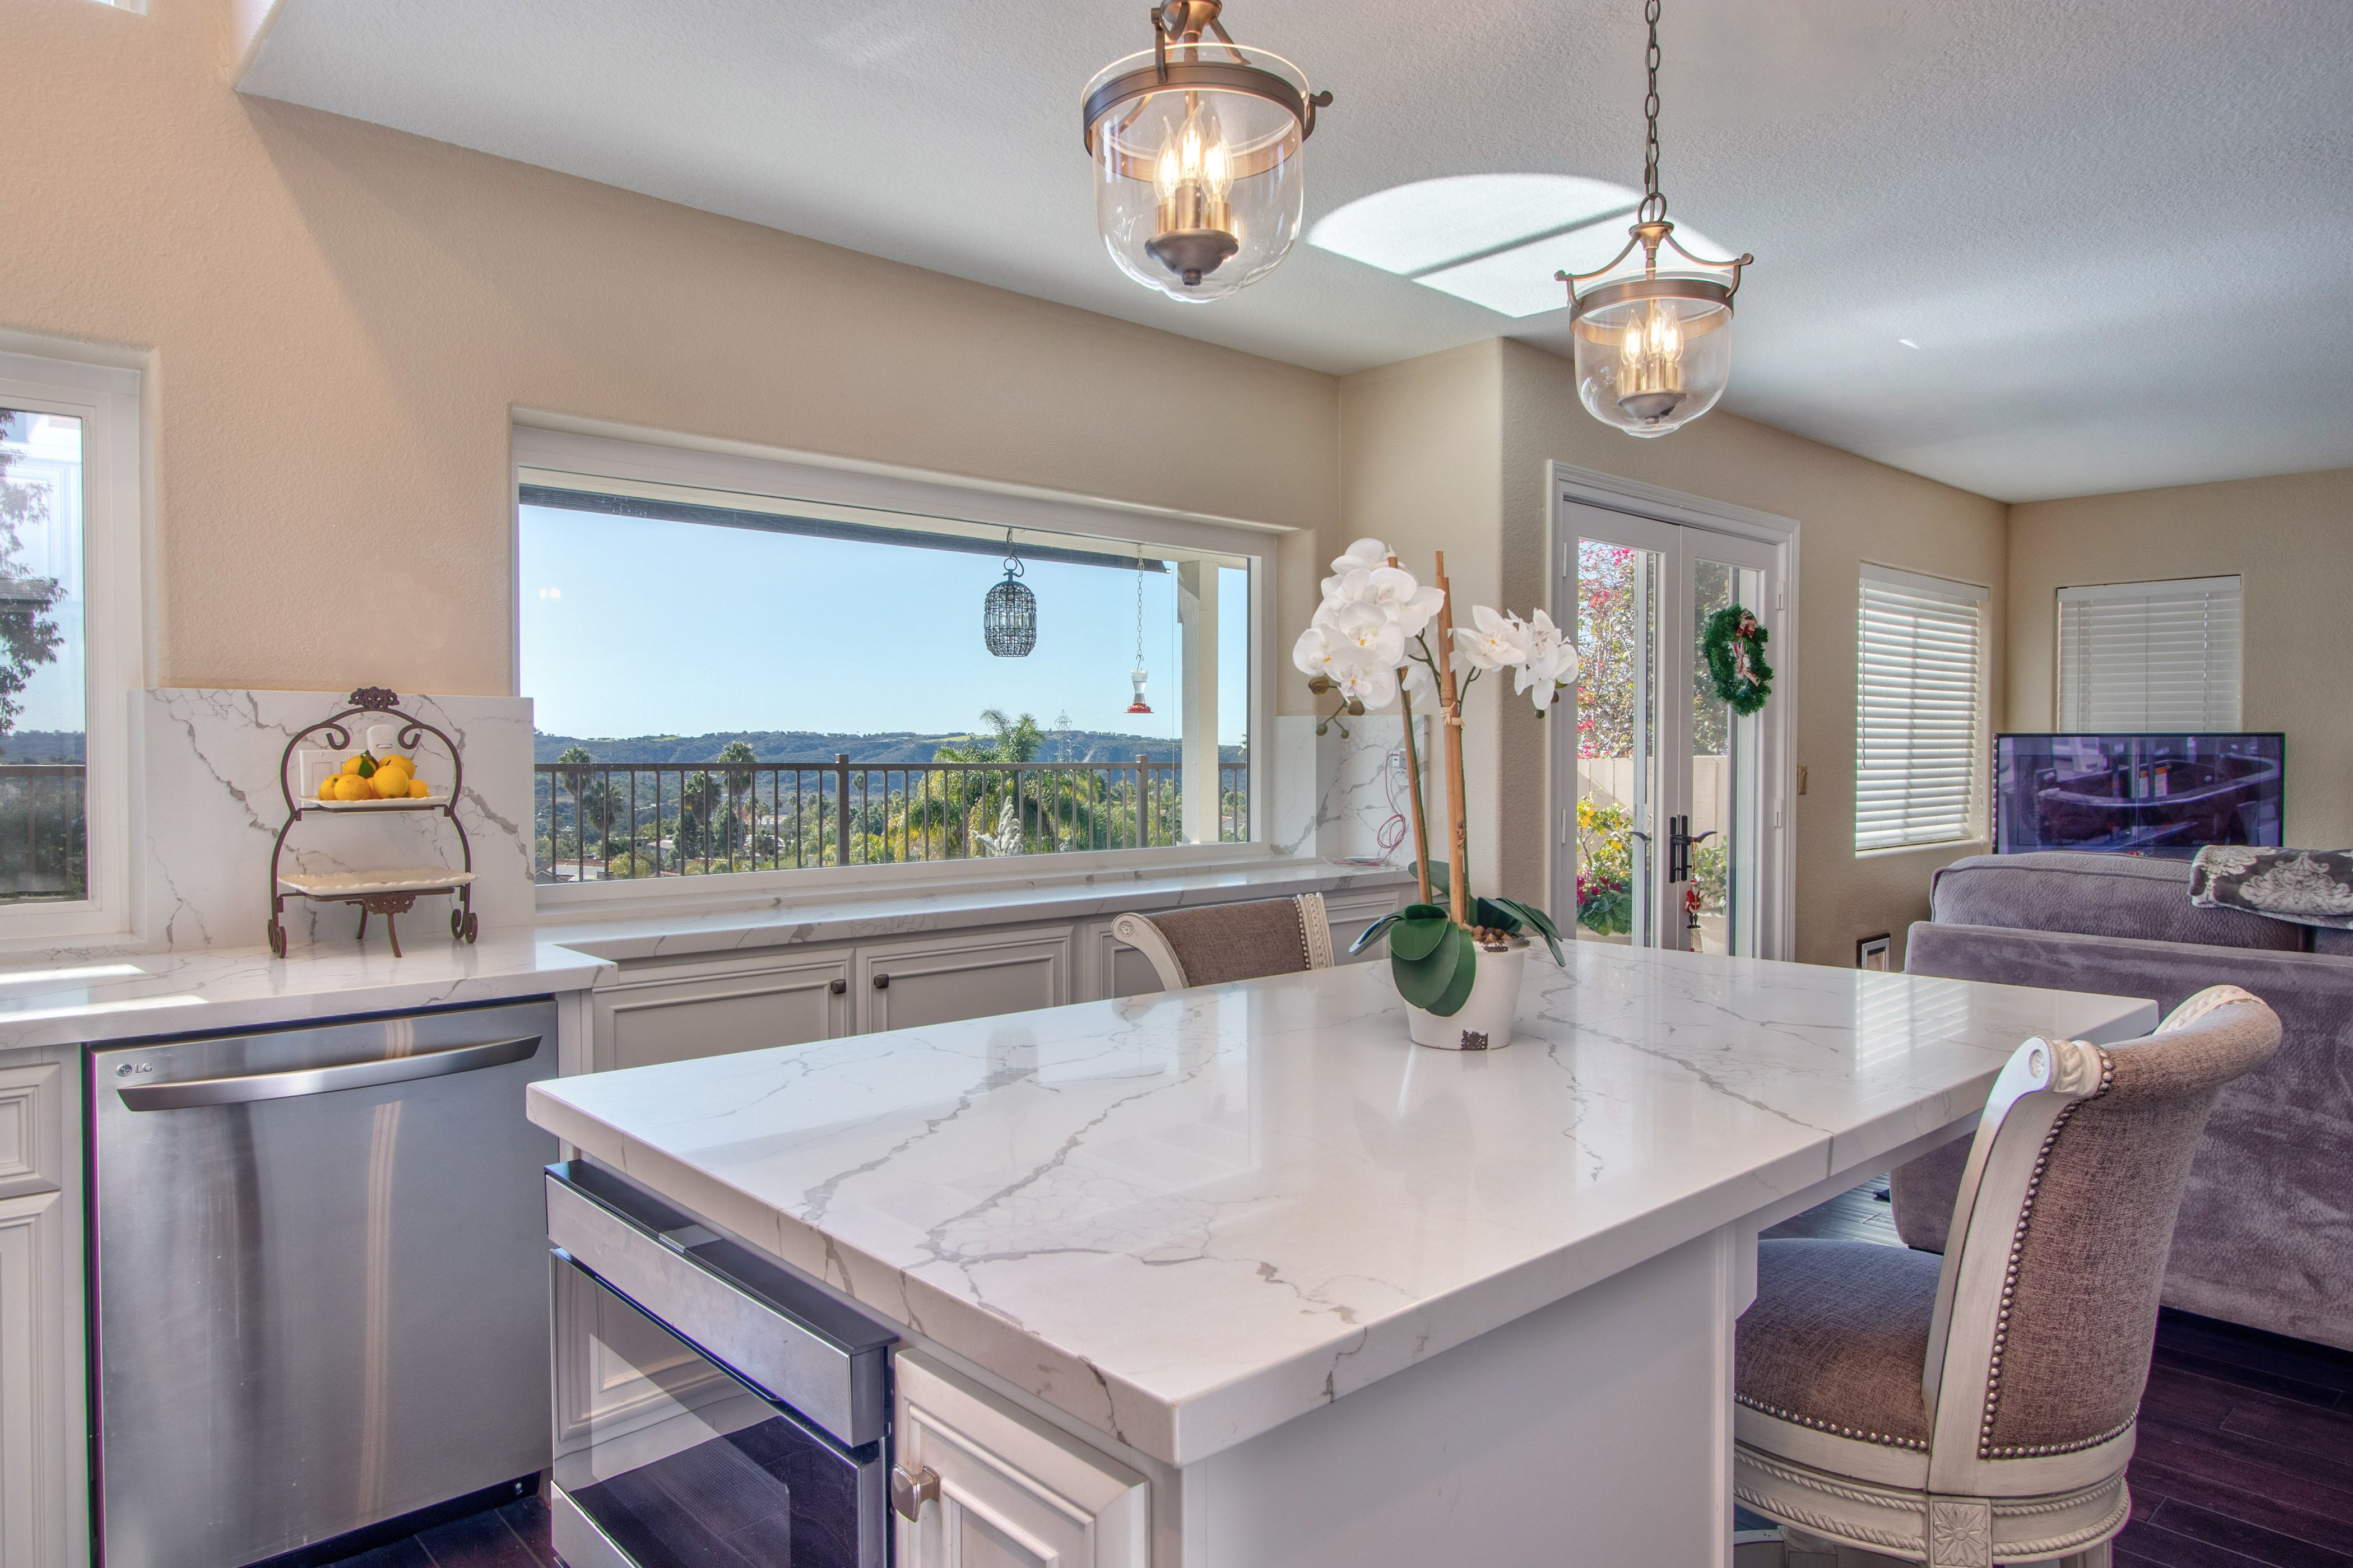 Carlsbad-Cabinet-Refacing-Project-14